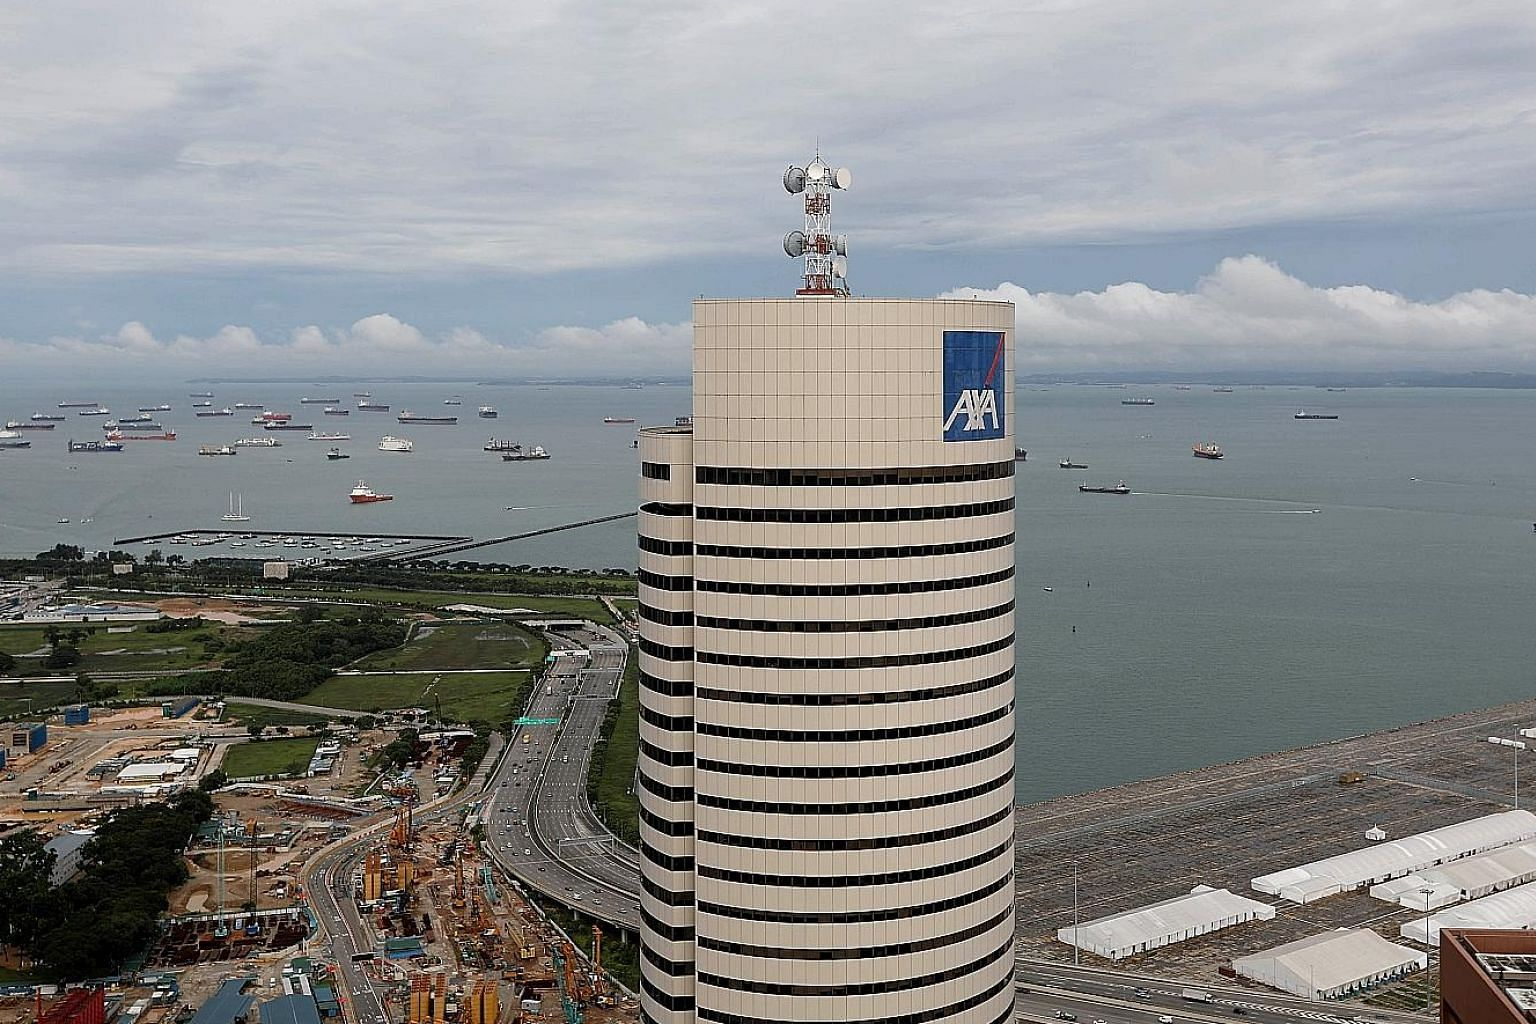 The investment market in the second quarter was propped up by the return of big-ticket commercial deals. The quarter's biggest deal was Chinese e-commerce giant Alibaba Group buying a 50 per cent stake in AXA Tower, a sale that values the property at